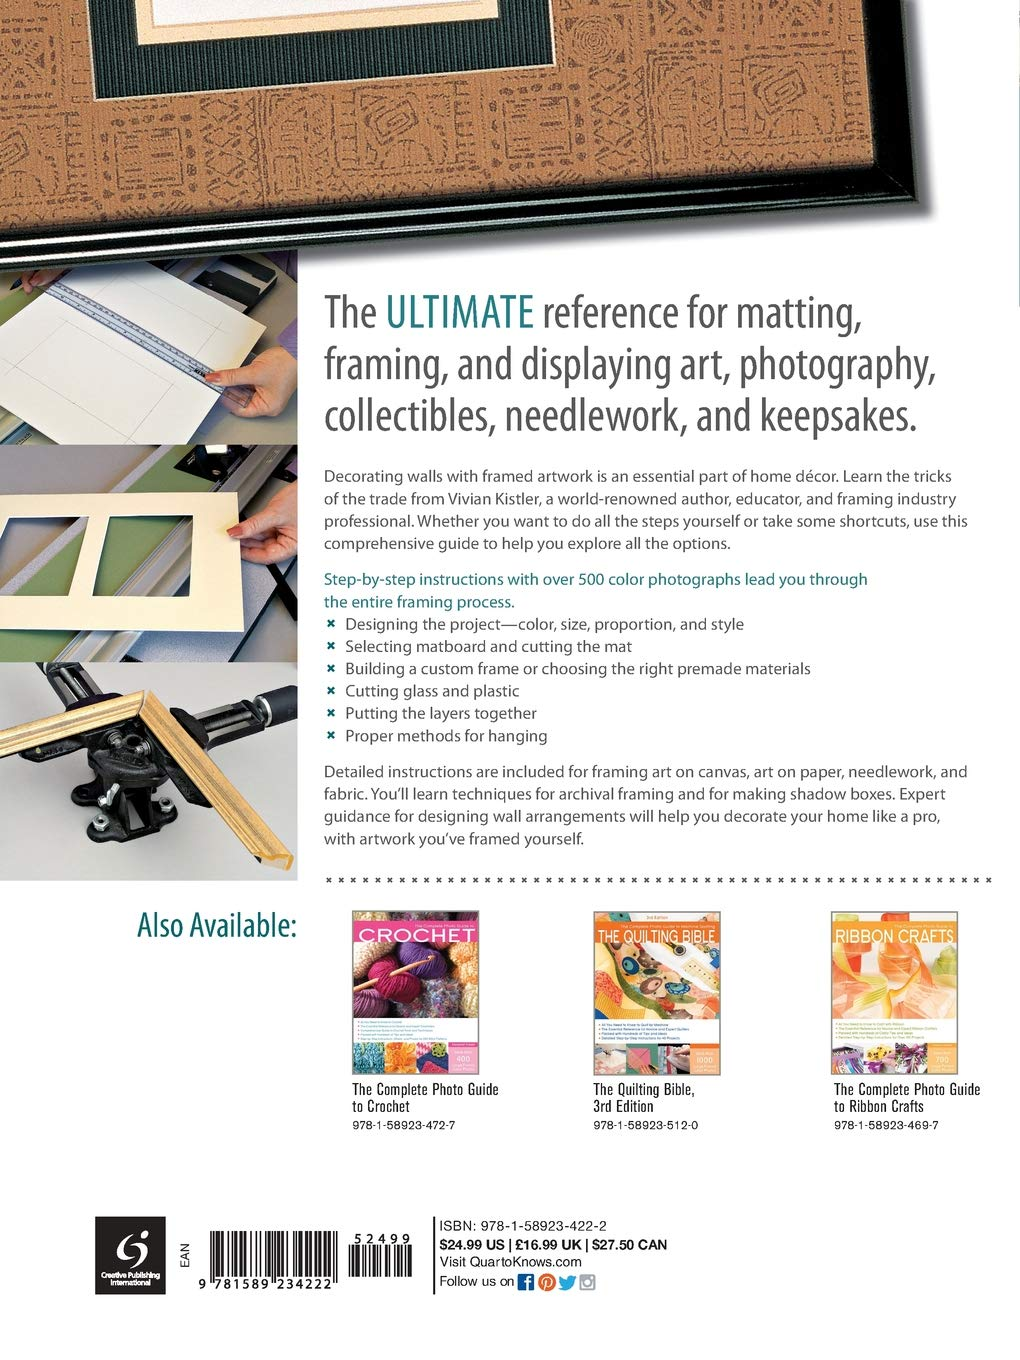 df3100c73d3 The Complete Photo Guide to Framing and Displaying Artwork  500 Full-Color  How-to Photos  Vivian Carli Kistler  0052944017071  Amazon.com  Books